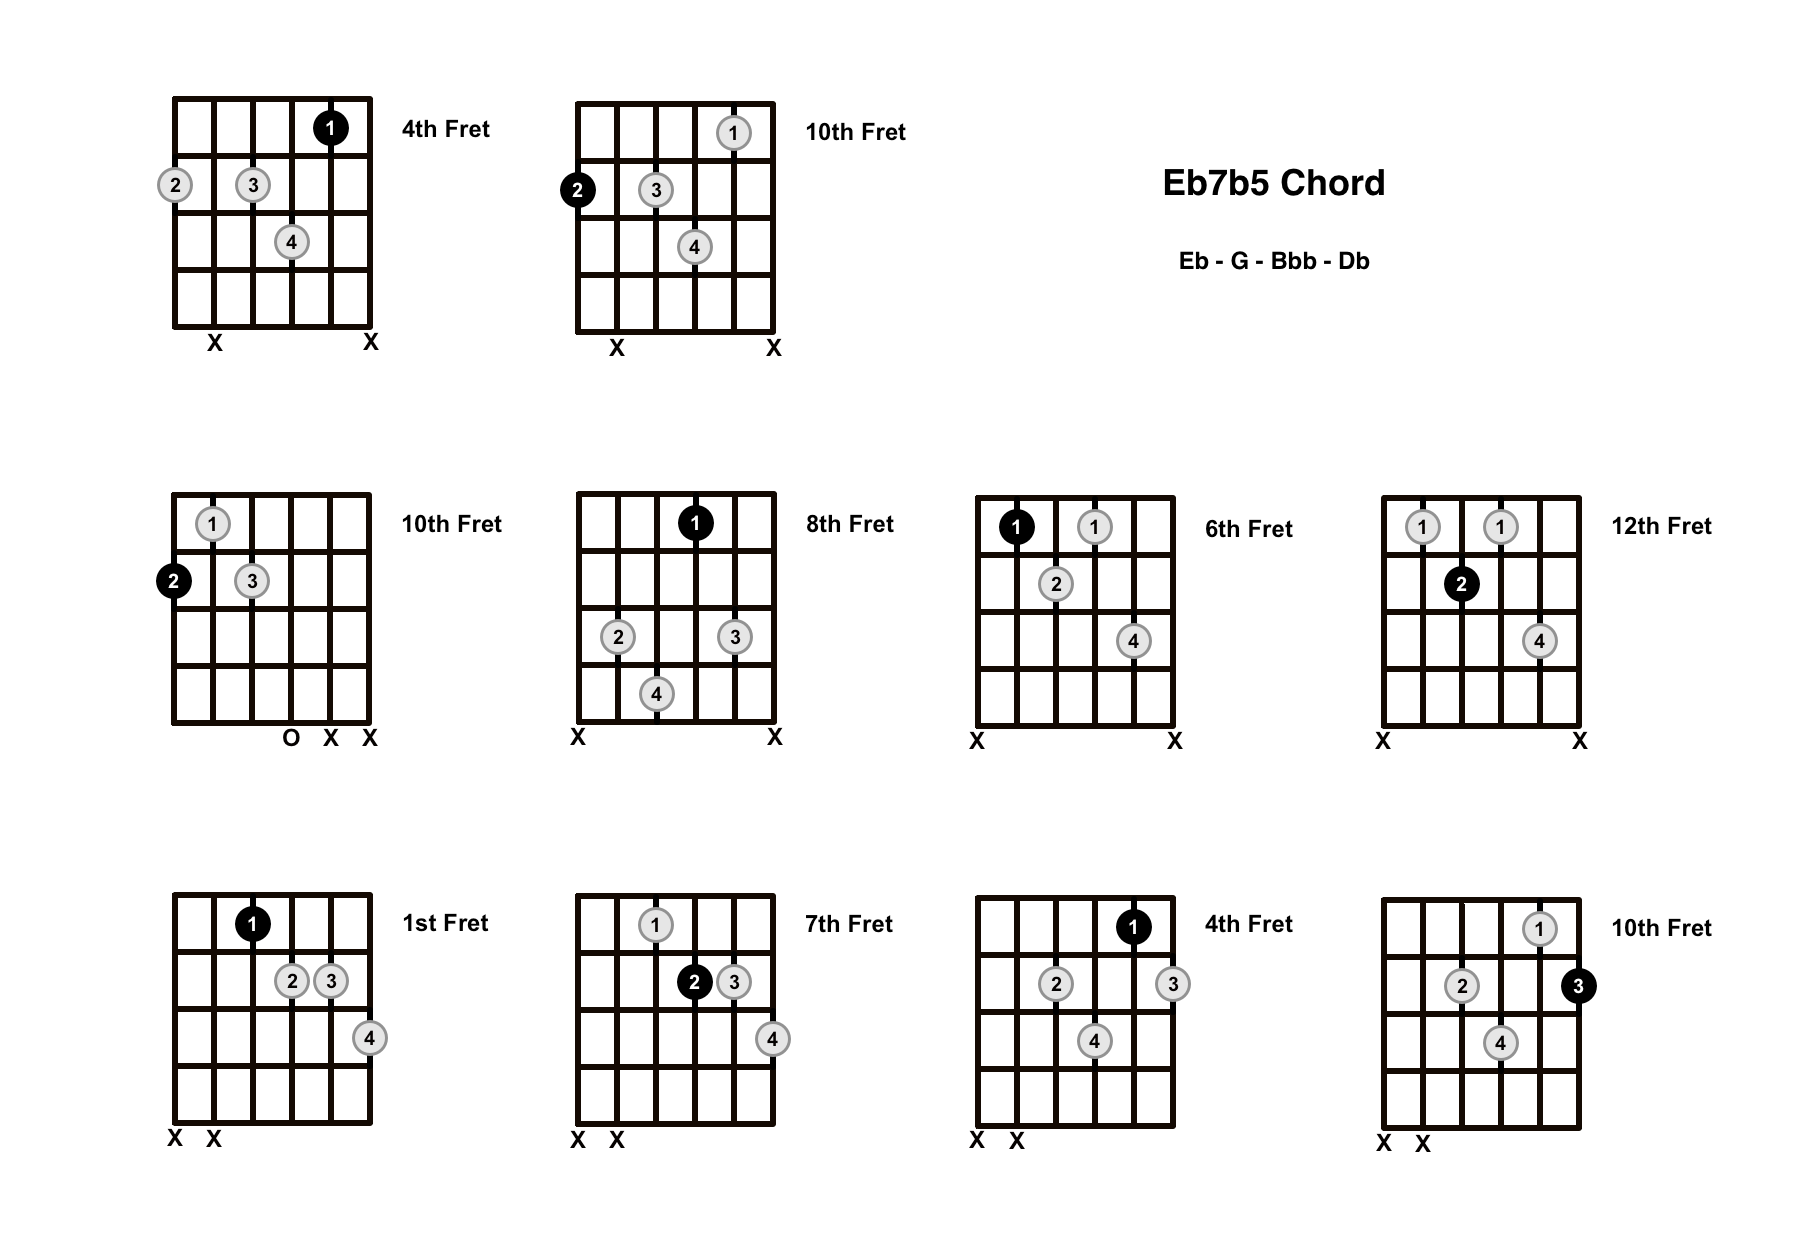 Eb7b5 Chord On The Guitar (E Flat Dominant 7 Flat 5) – Diagrams, Finger Positions and Theory